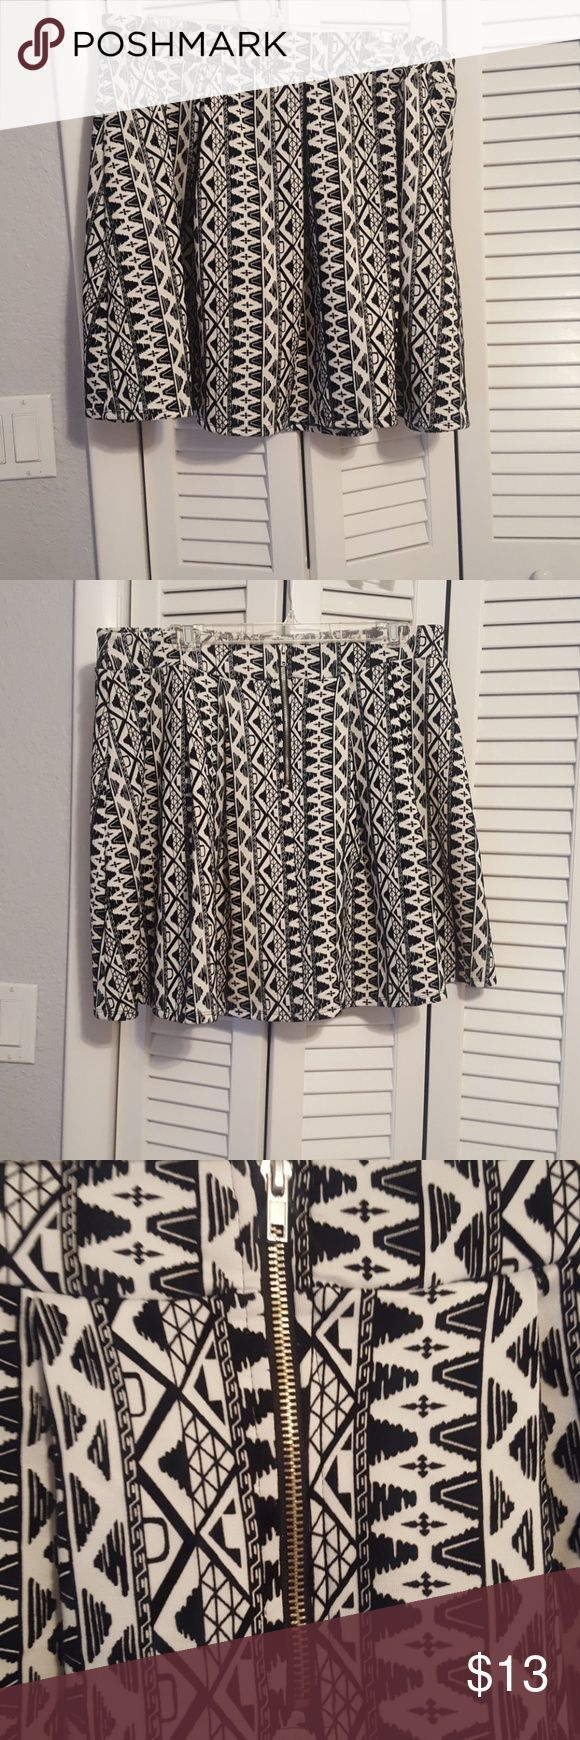 Forever 21 black and white print skirt 2X Forever 21 black and white print skirt 2x. Black part is a velvet texture. Closes with zipper and hook & eyelet. Does not have a lot of give. Forever 21 Skirts Circle & Skater